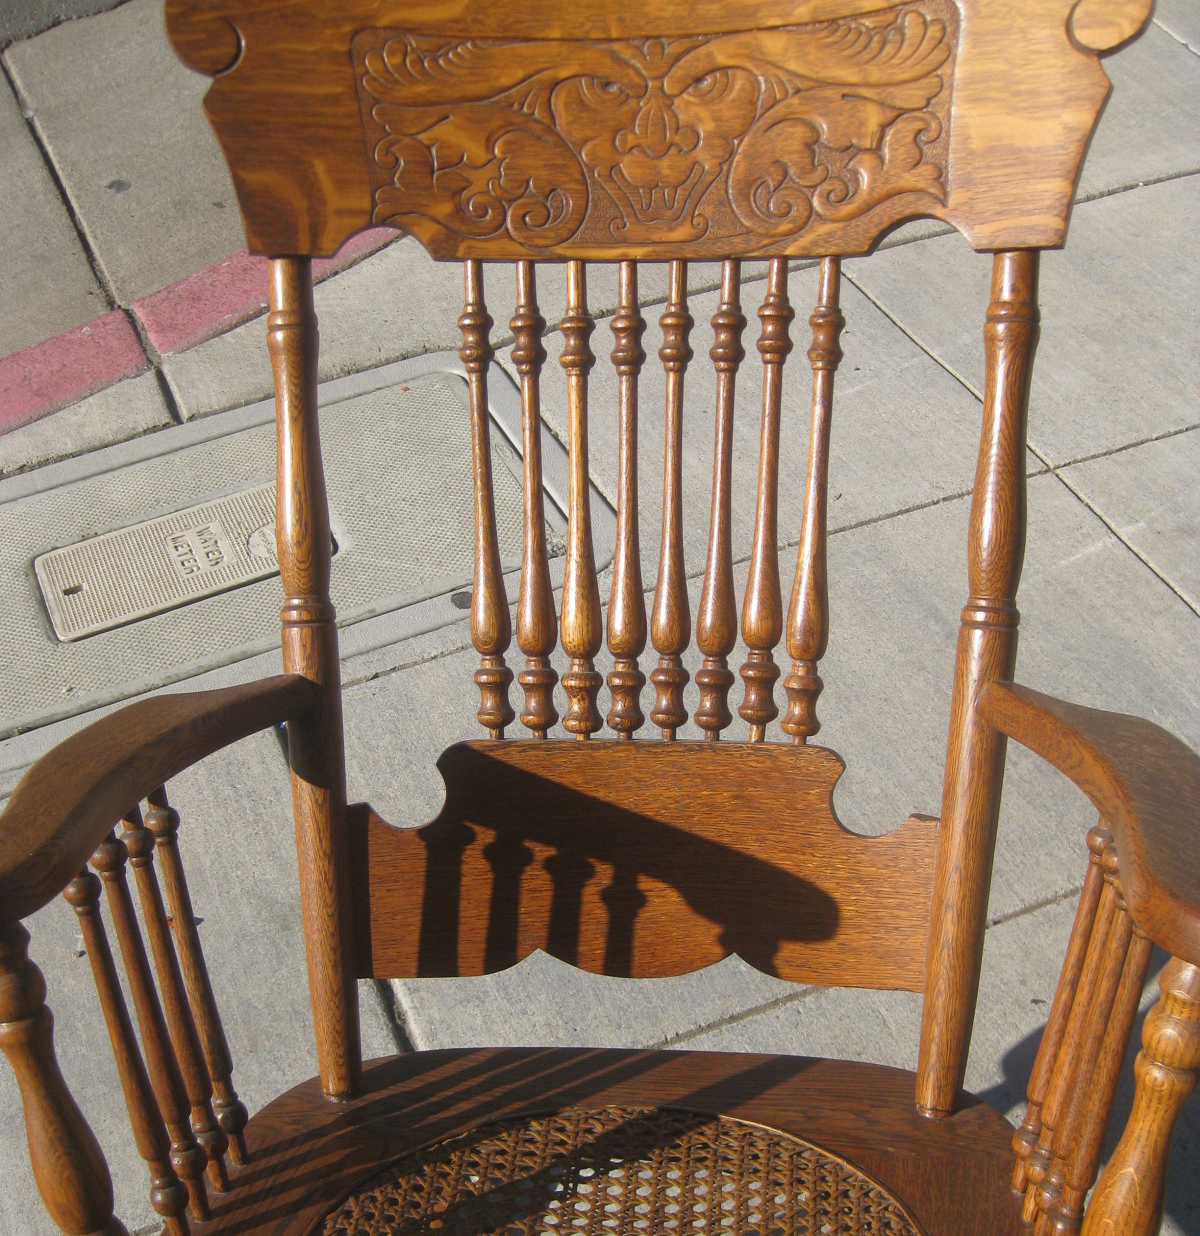 SOLD - Antique Rocking Chair - $100 - UHURU FURNITURE & COLLECTIBLES: SOLD - Antique Rocking Chair - $100